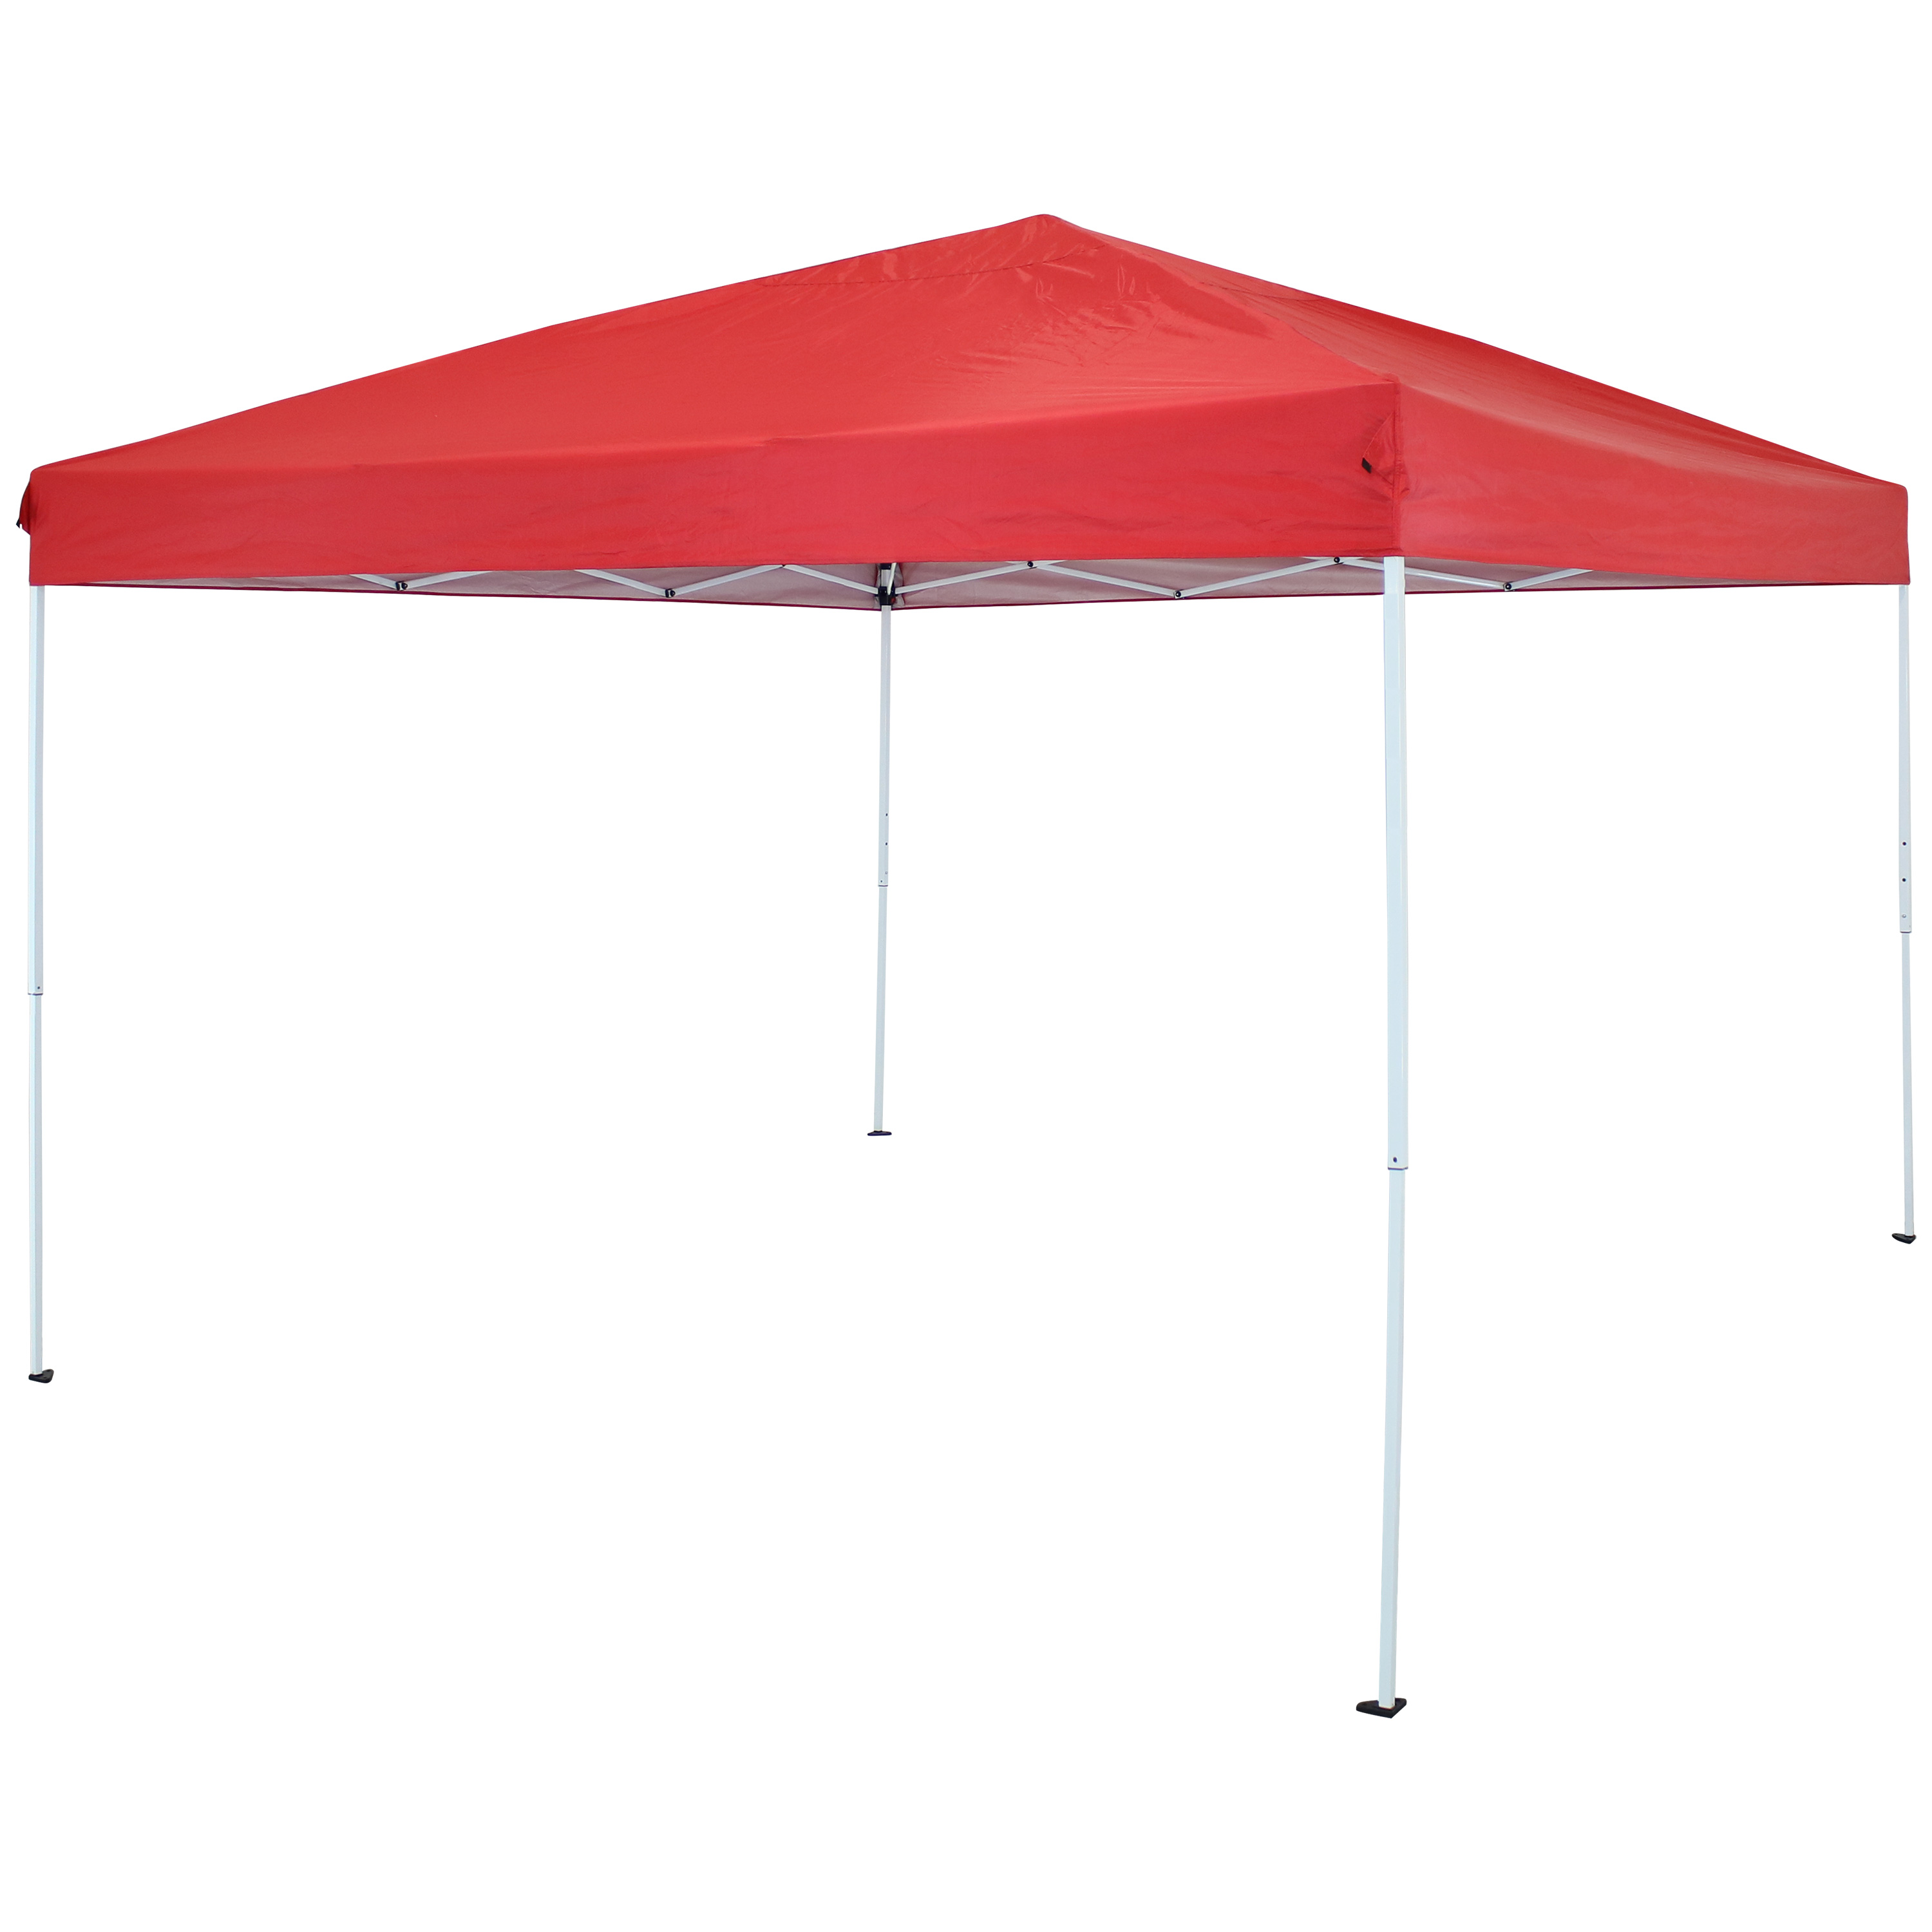 12 x 12 Foot Quick Up Steel Frame Canopy with Carrying Bag Red